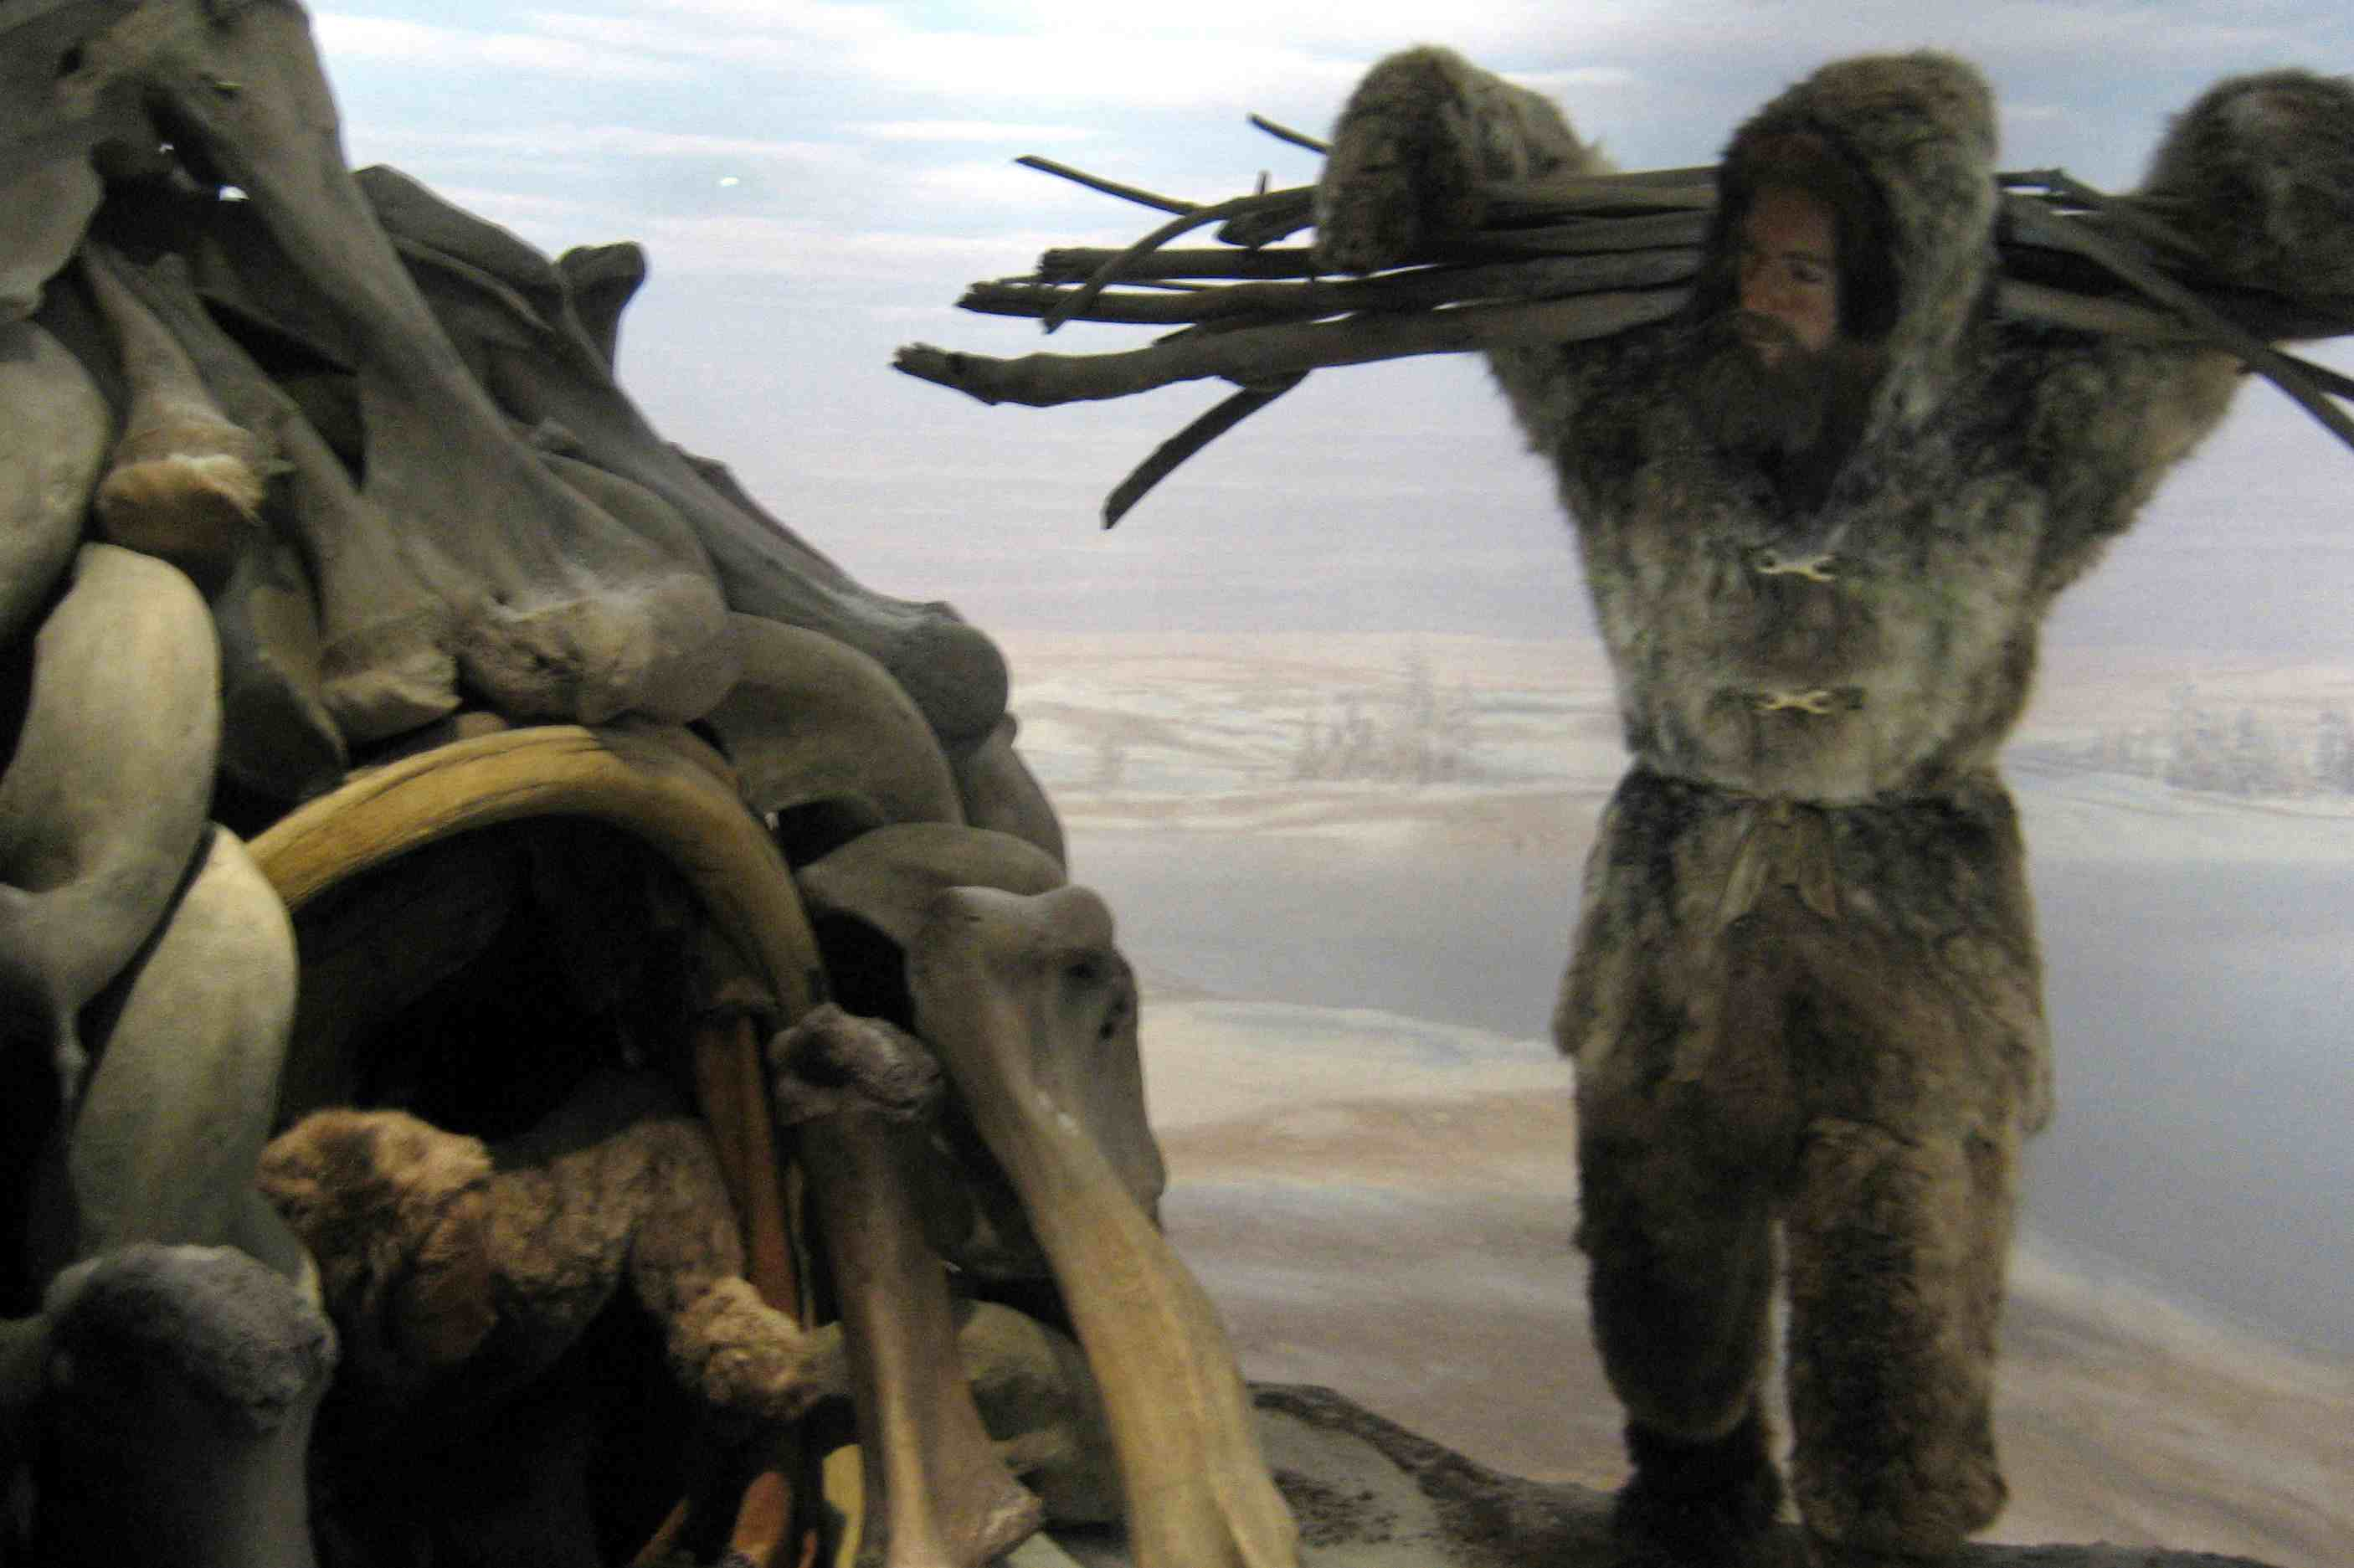 Mezhirich Ukraine (Diorama display at the American Museum of Natural History)